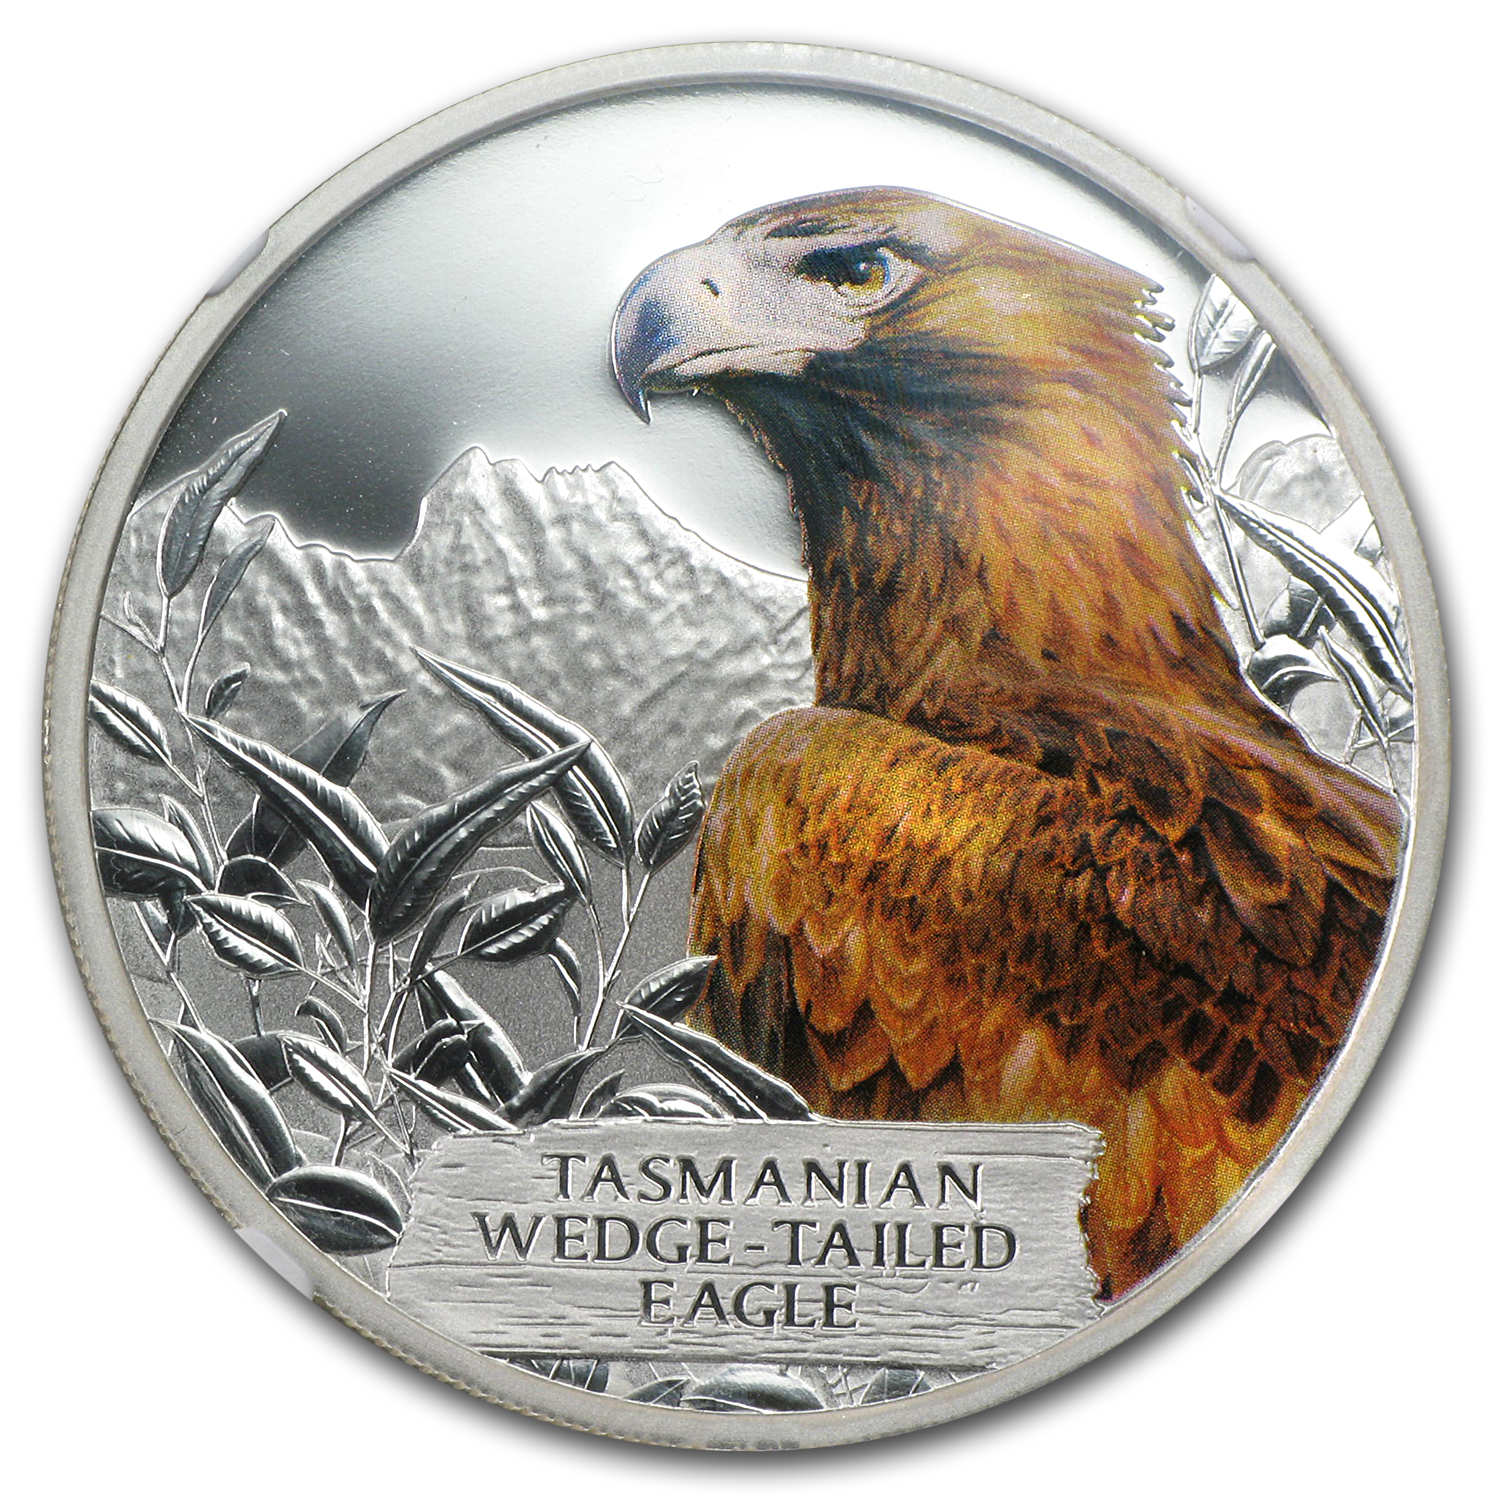 2012 1 oz Proof Silver Wedge-Tailed Eagle - NGC PF-69 UCAM